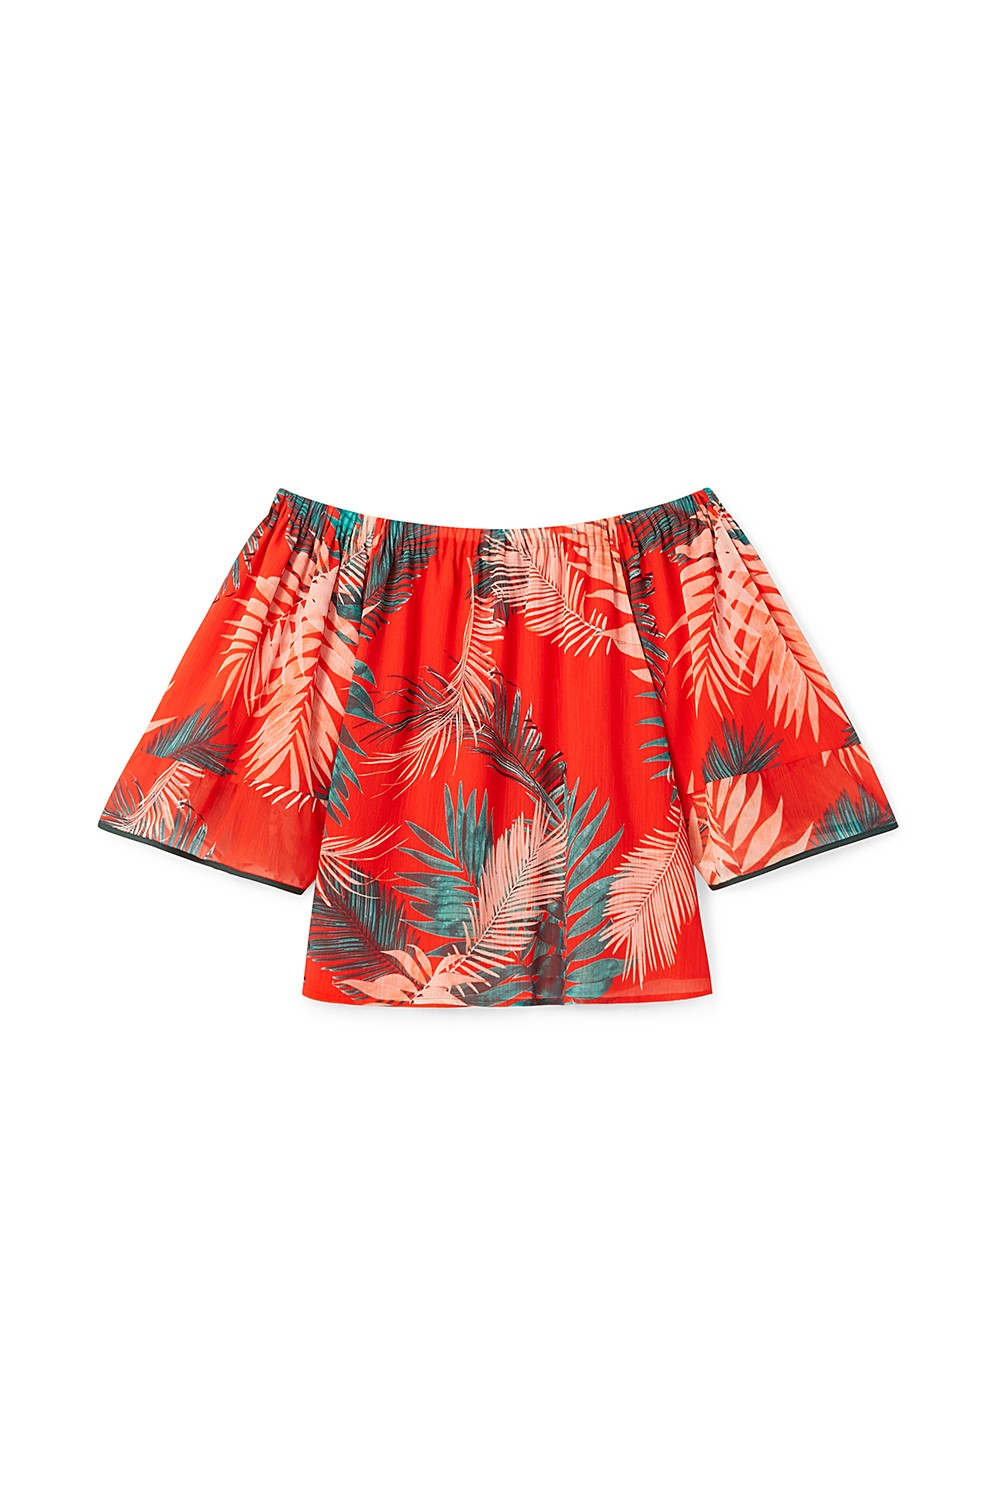 Rebecca Minkoff Faith Tropical Palm Off-The-Shoulder Top, Red In Lipstick Print